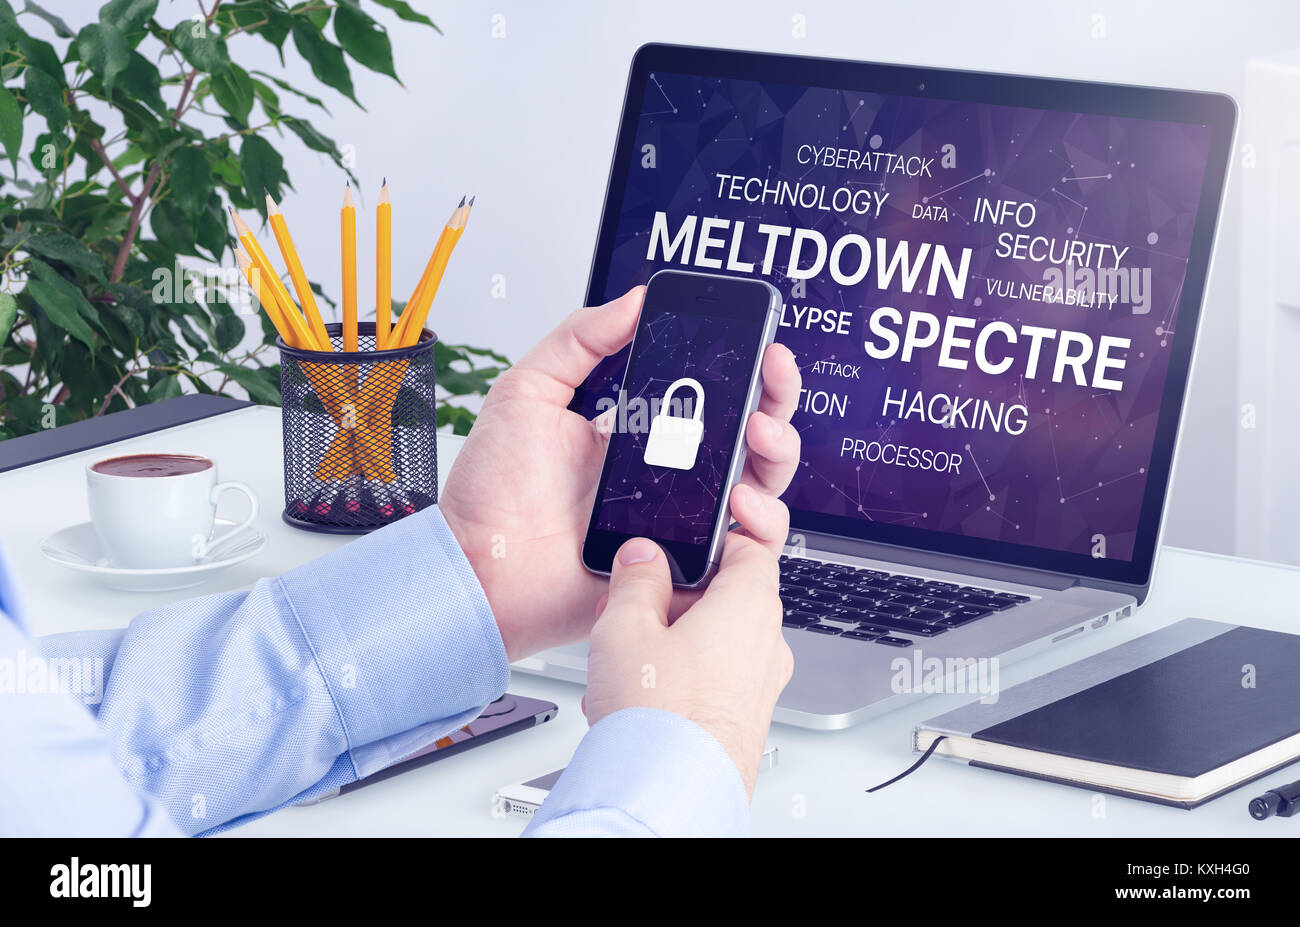 Meltdown and spectre threat concept on laptop and smartphone screen. - Stock Image